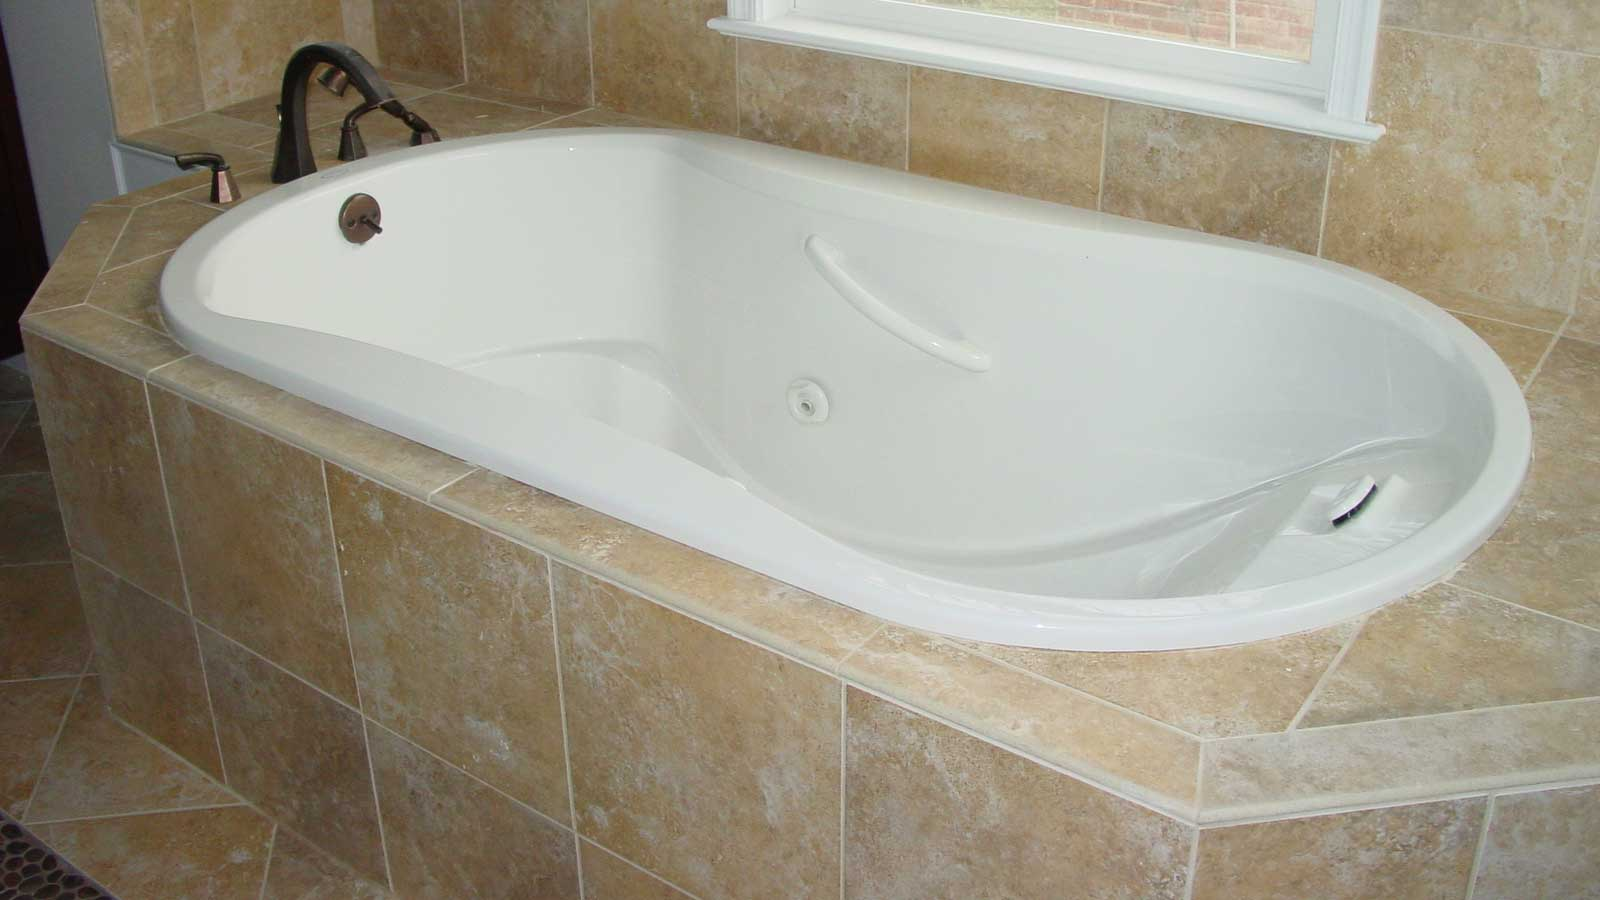 The Common Methods of Installation For Bathtubs